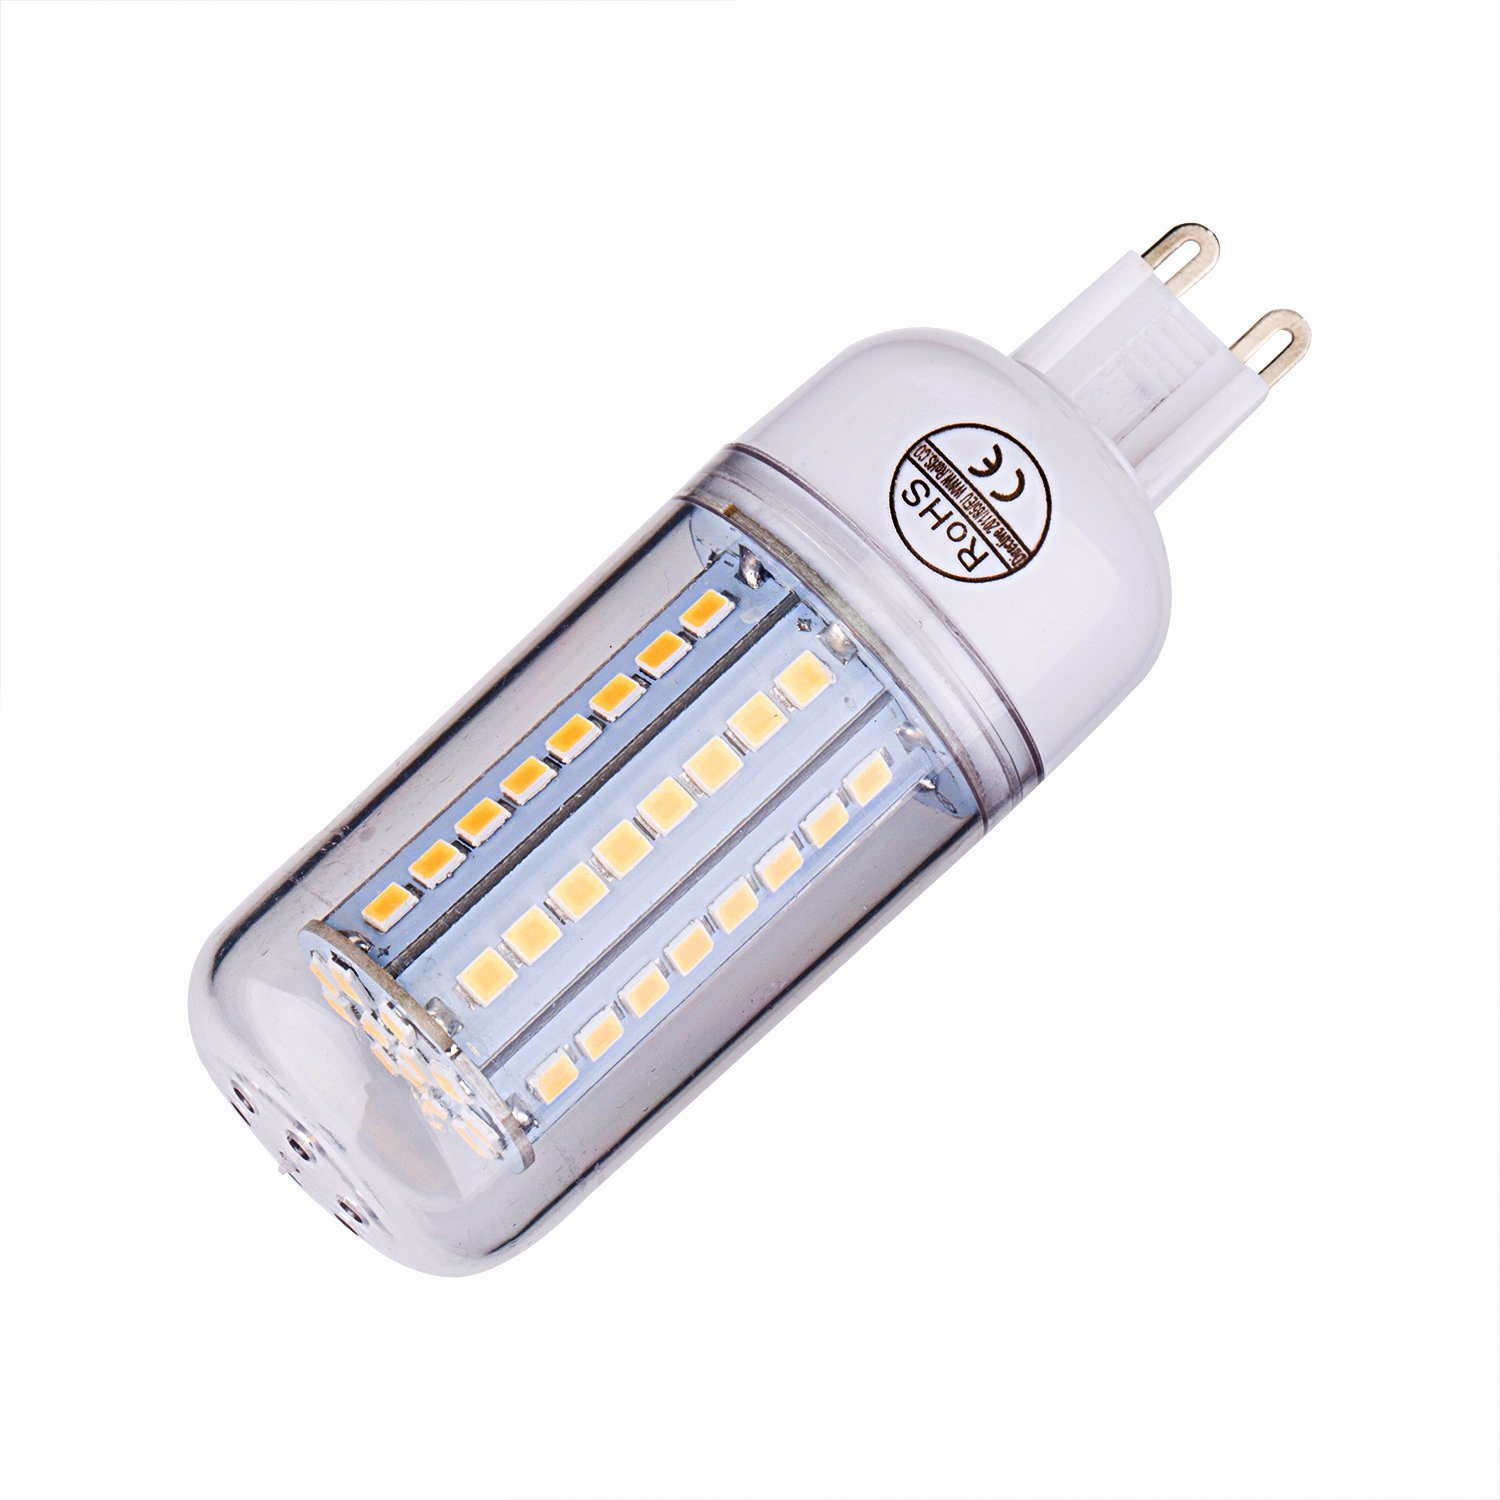 Lampen G9 China 68leds G9 Led Corn Bulb Lamp Smd 2835 High Power 220v 110v